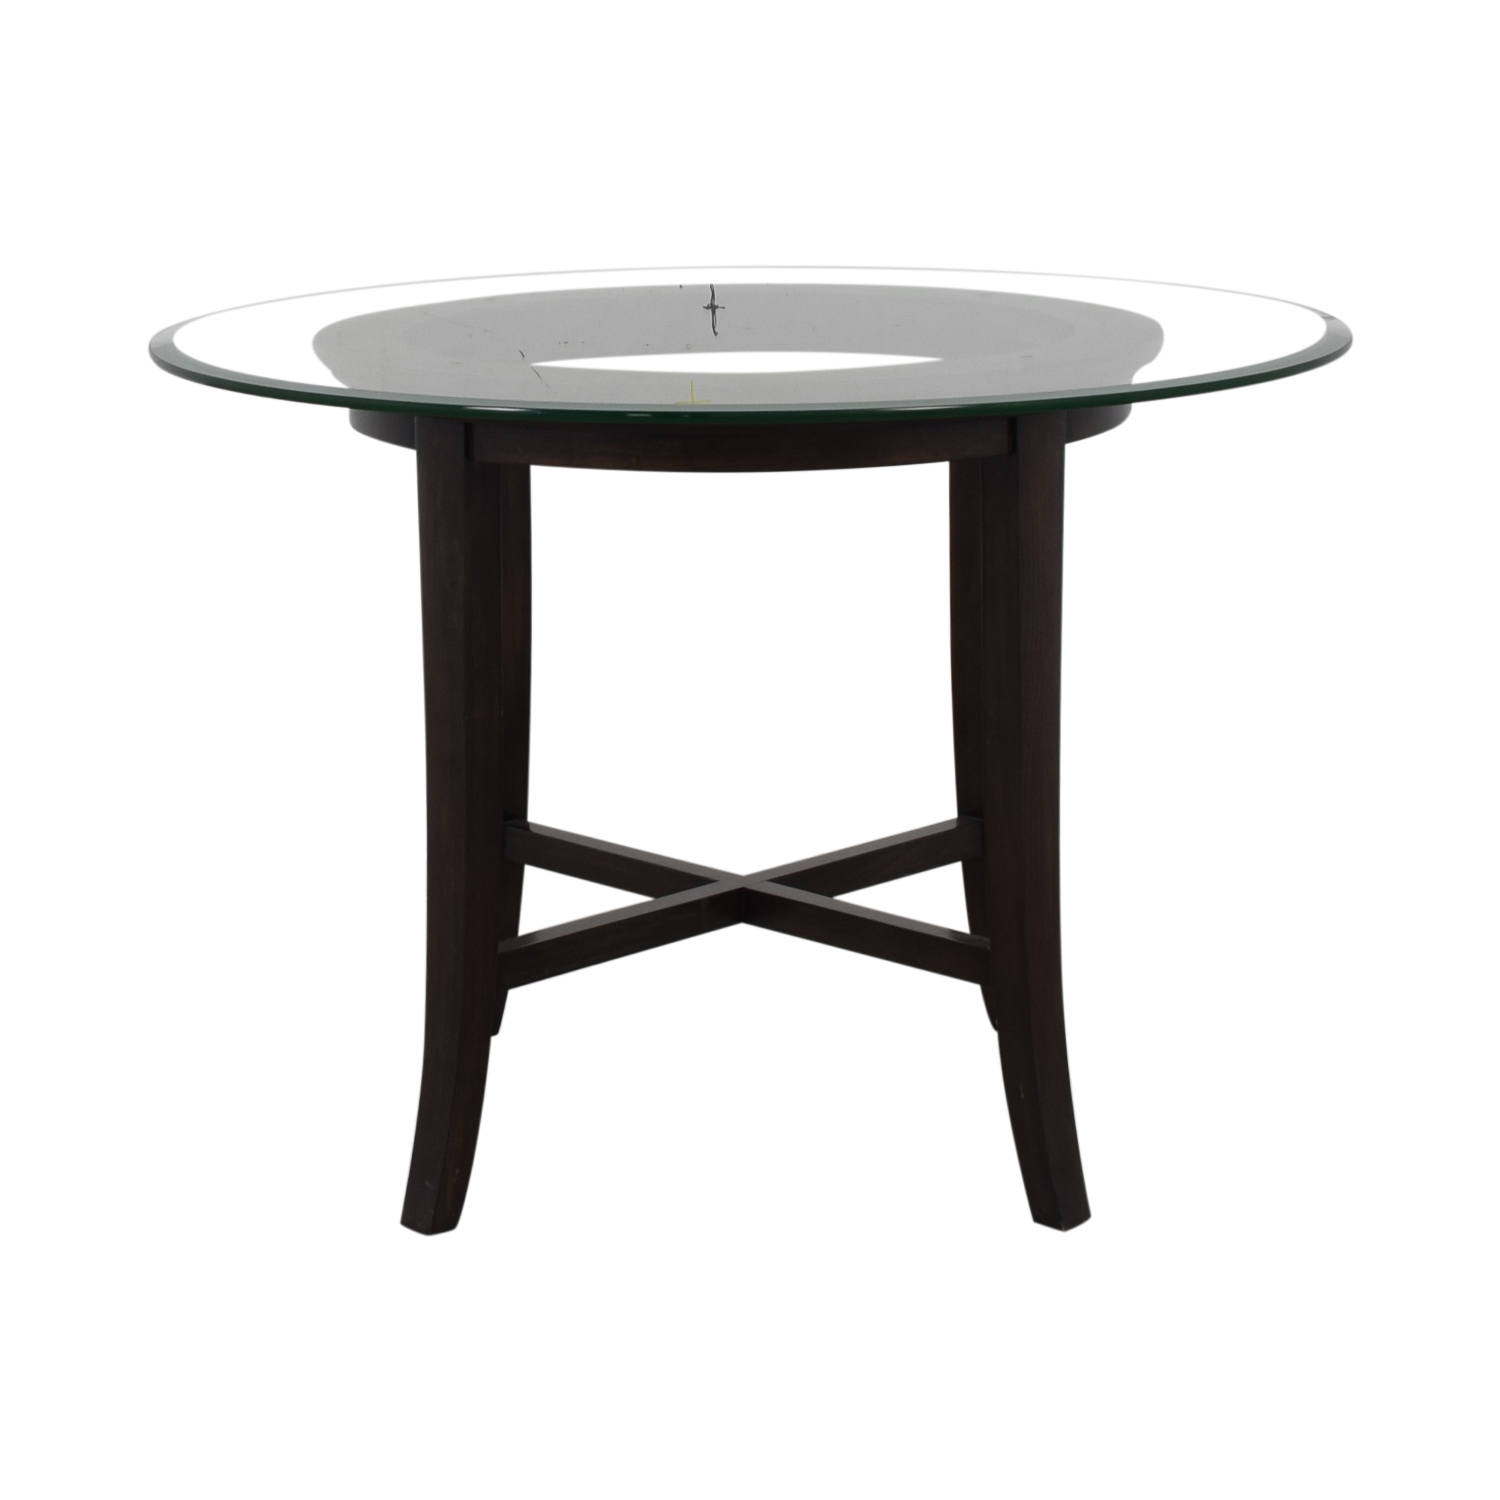 Crate & Barrel Crate & Barrel Halo Glass and Wood Dining Table brown